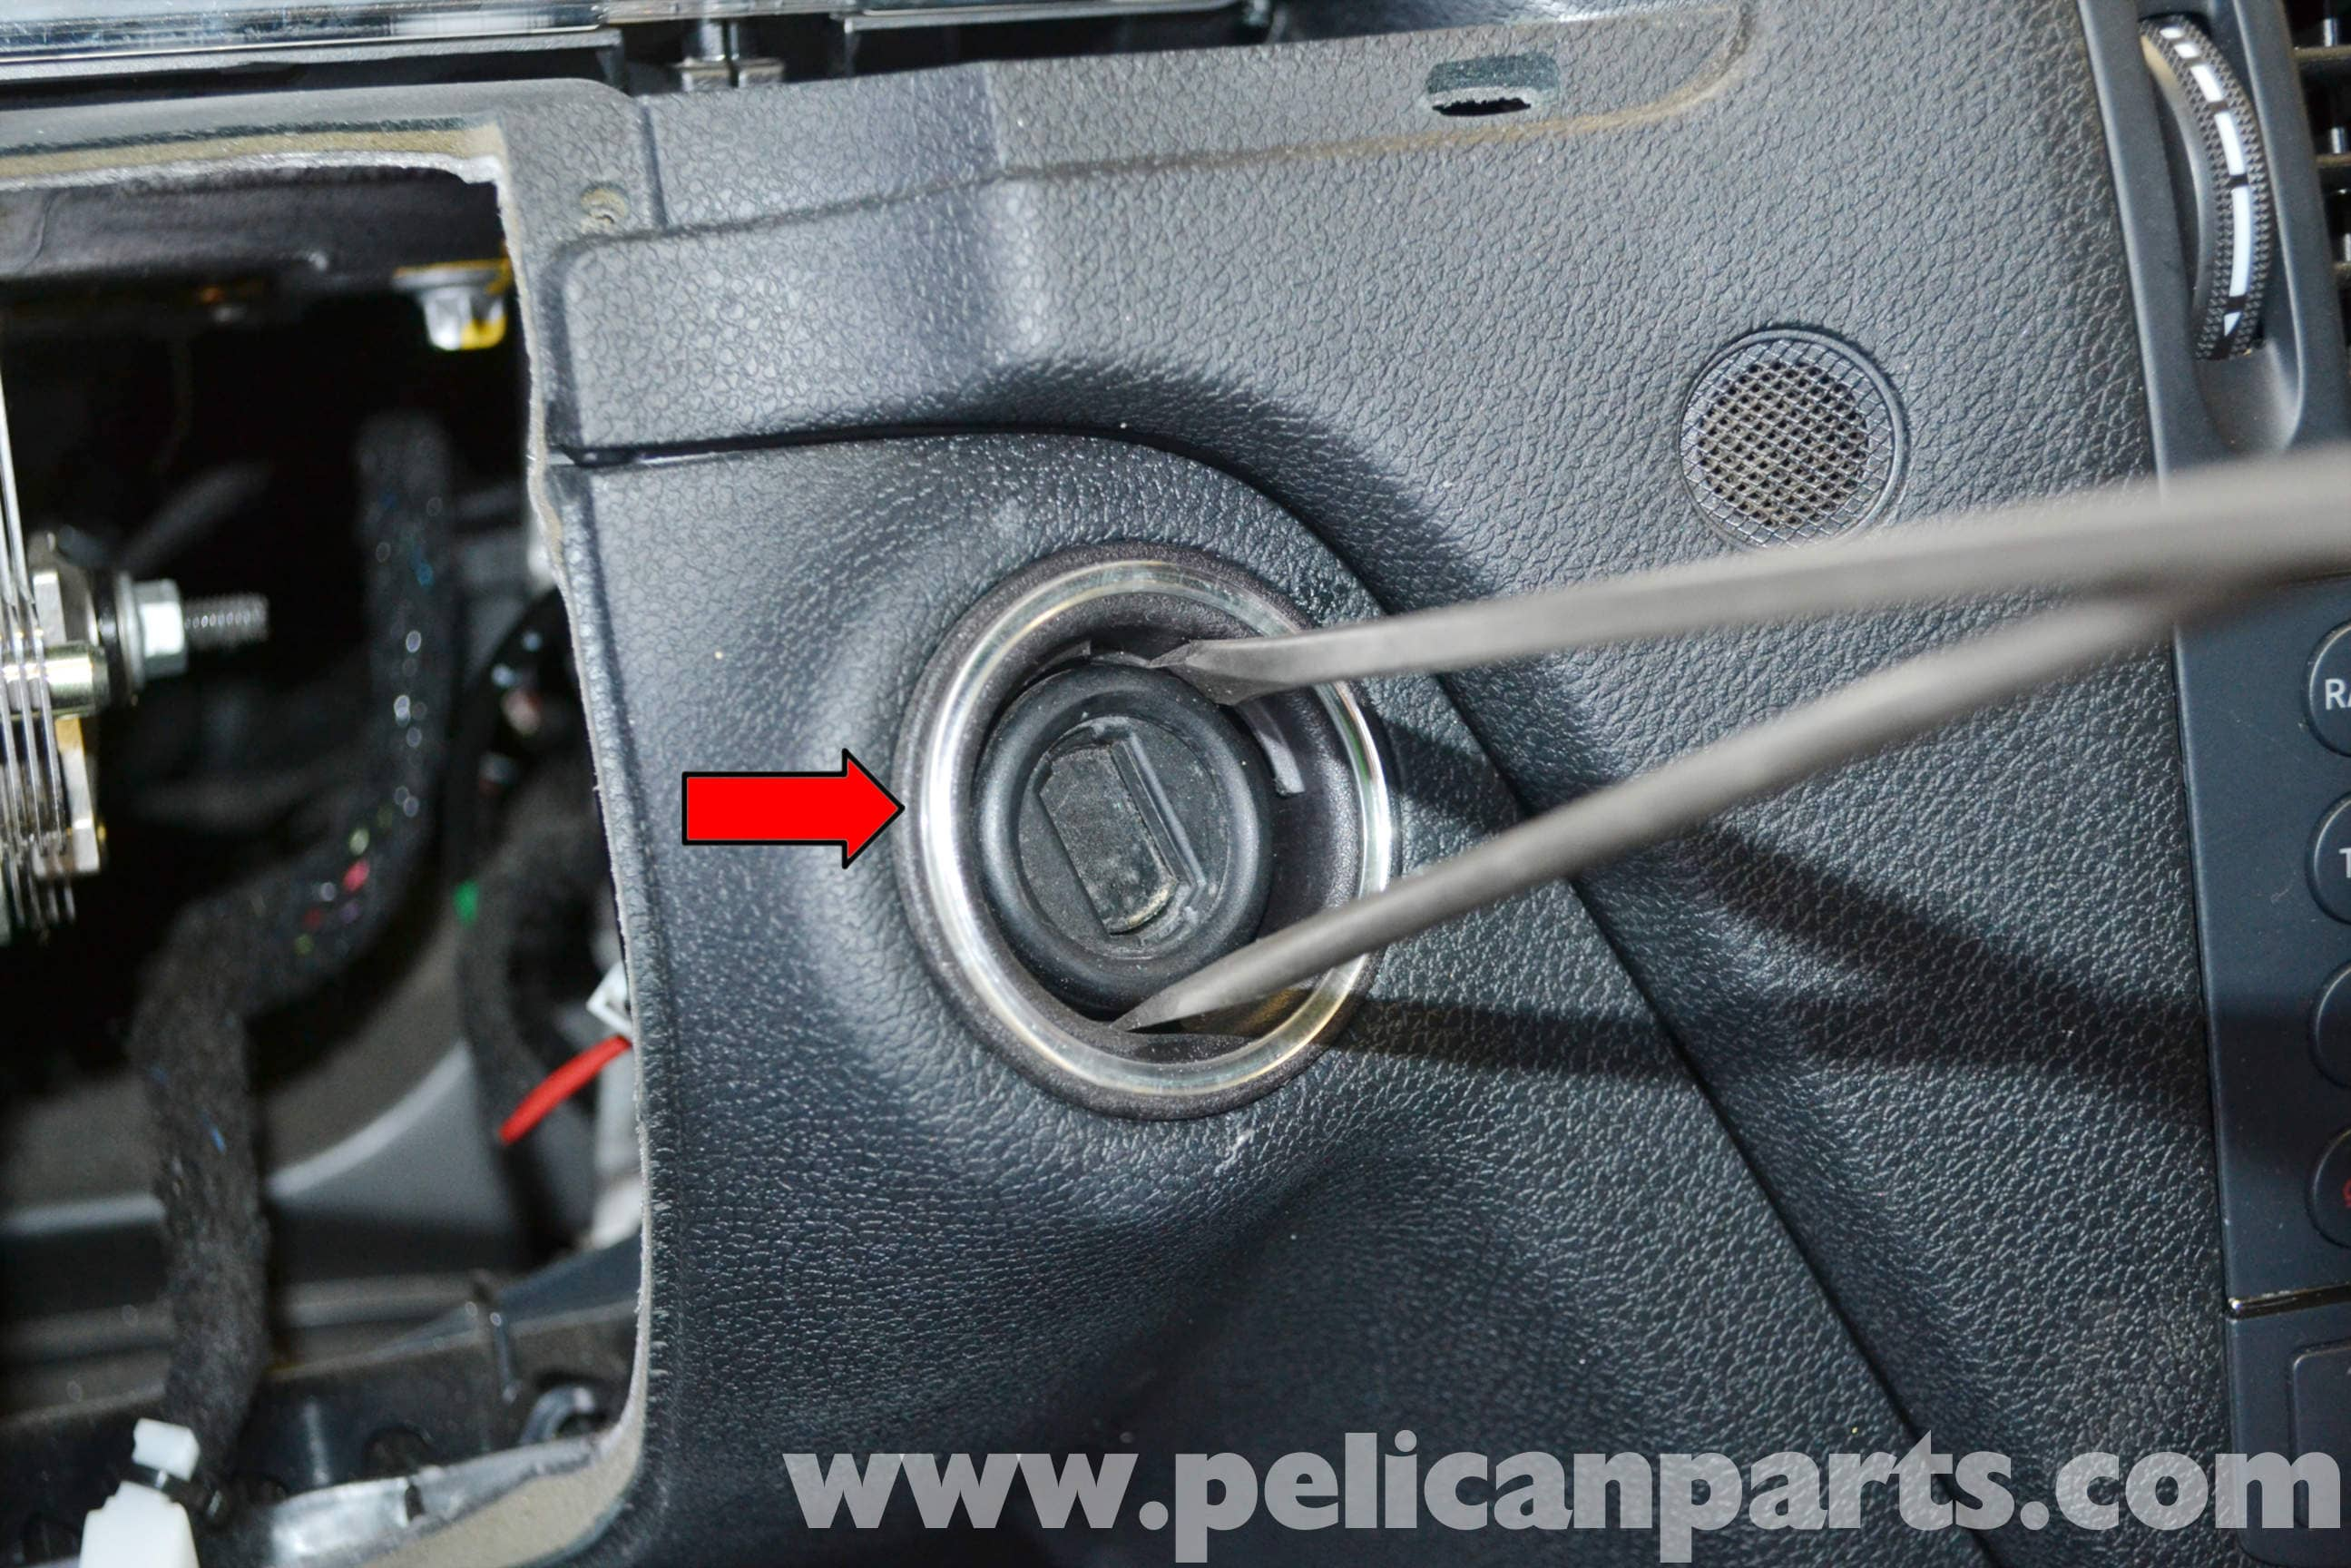 Mercedes benz w204 ignition switch replacement 2008 for Mercedes benz ignition key troubleshooting